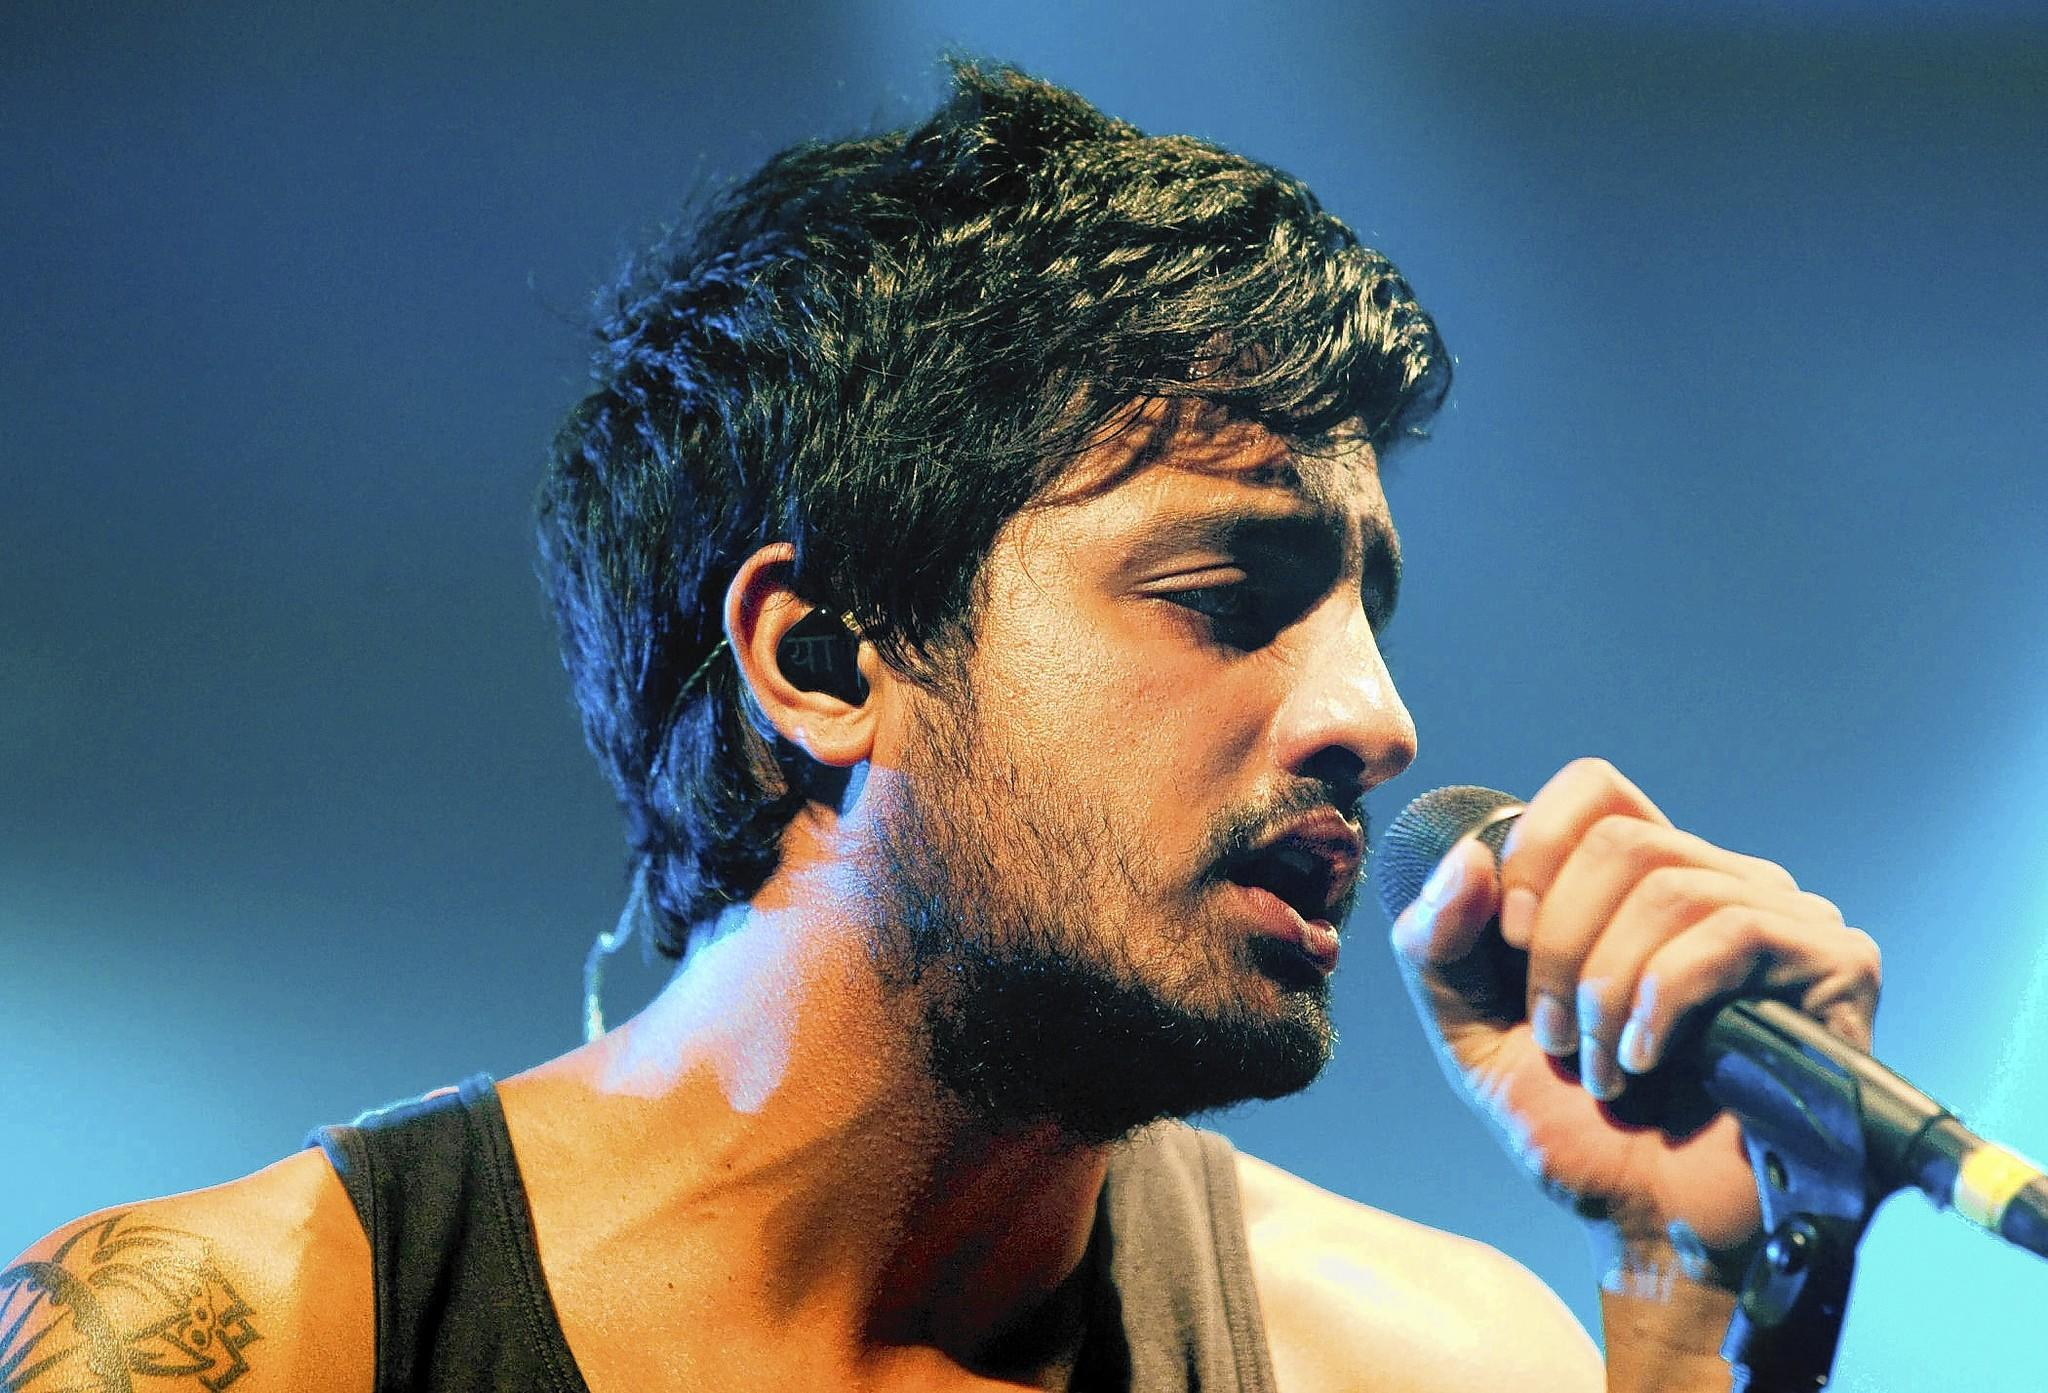 Young the Giant's Sameer Gadhia performs at Bethlehem's Musikfest in 2012.